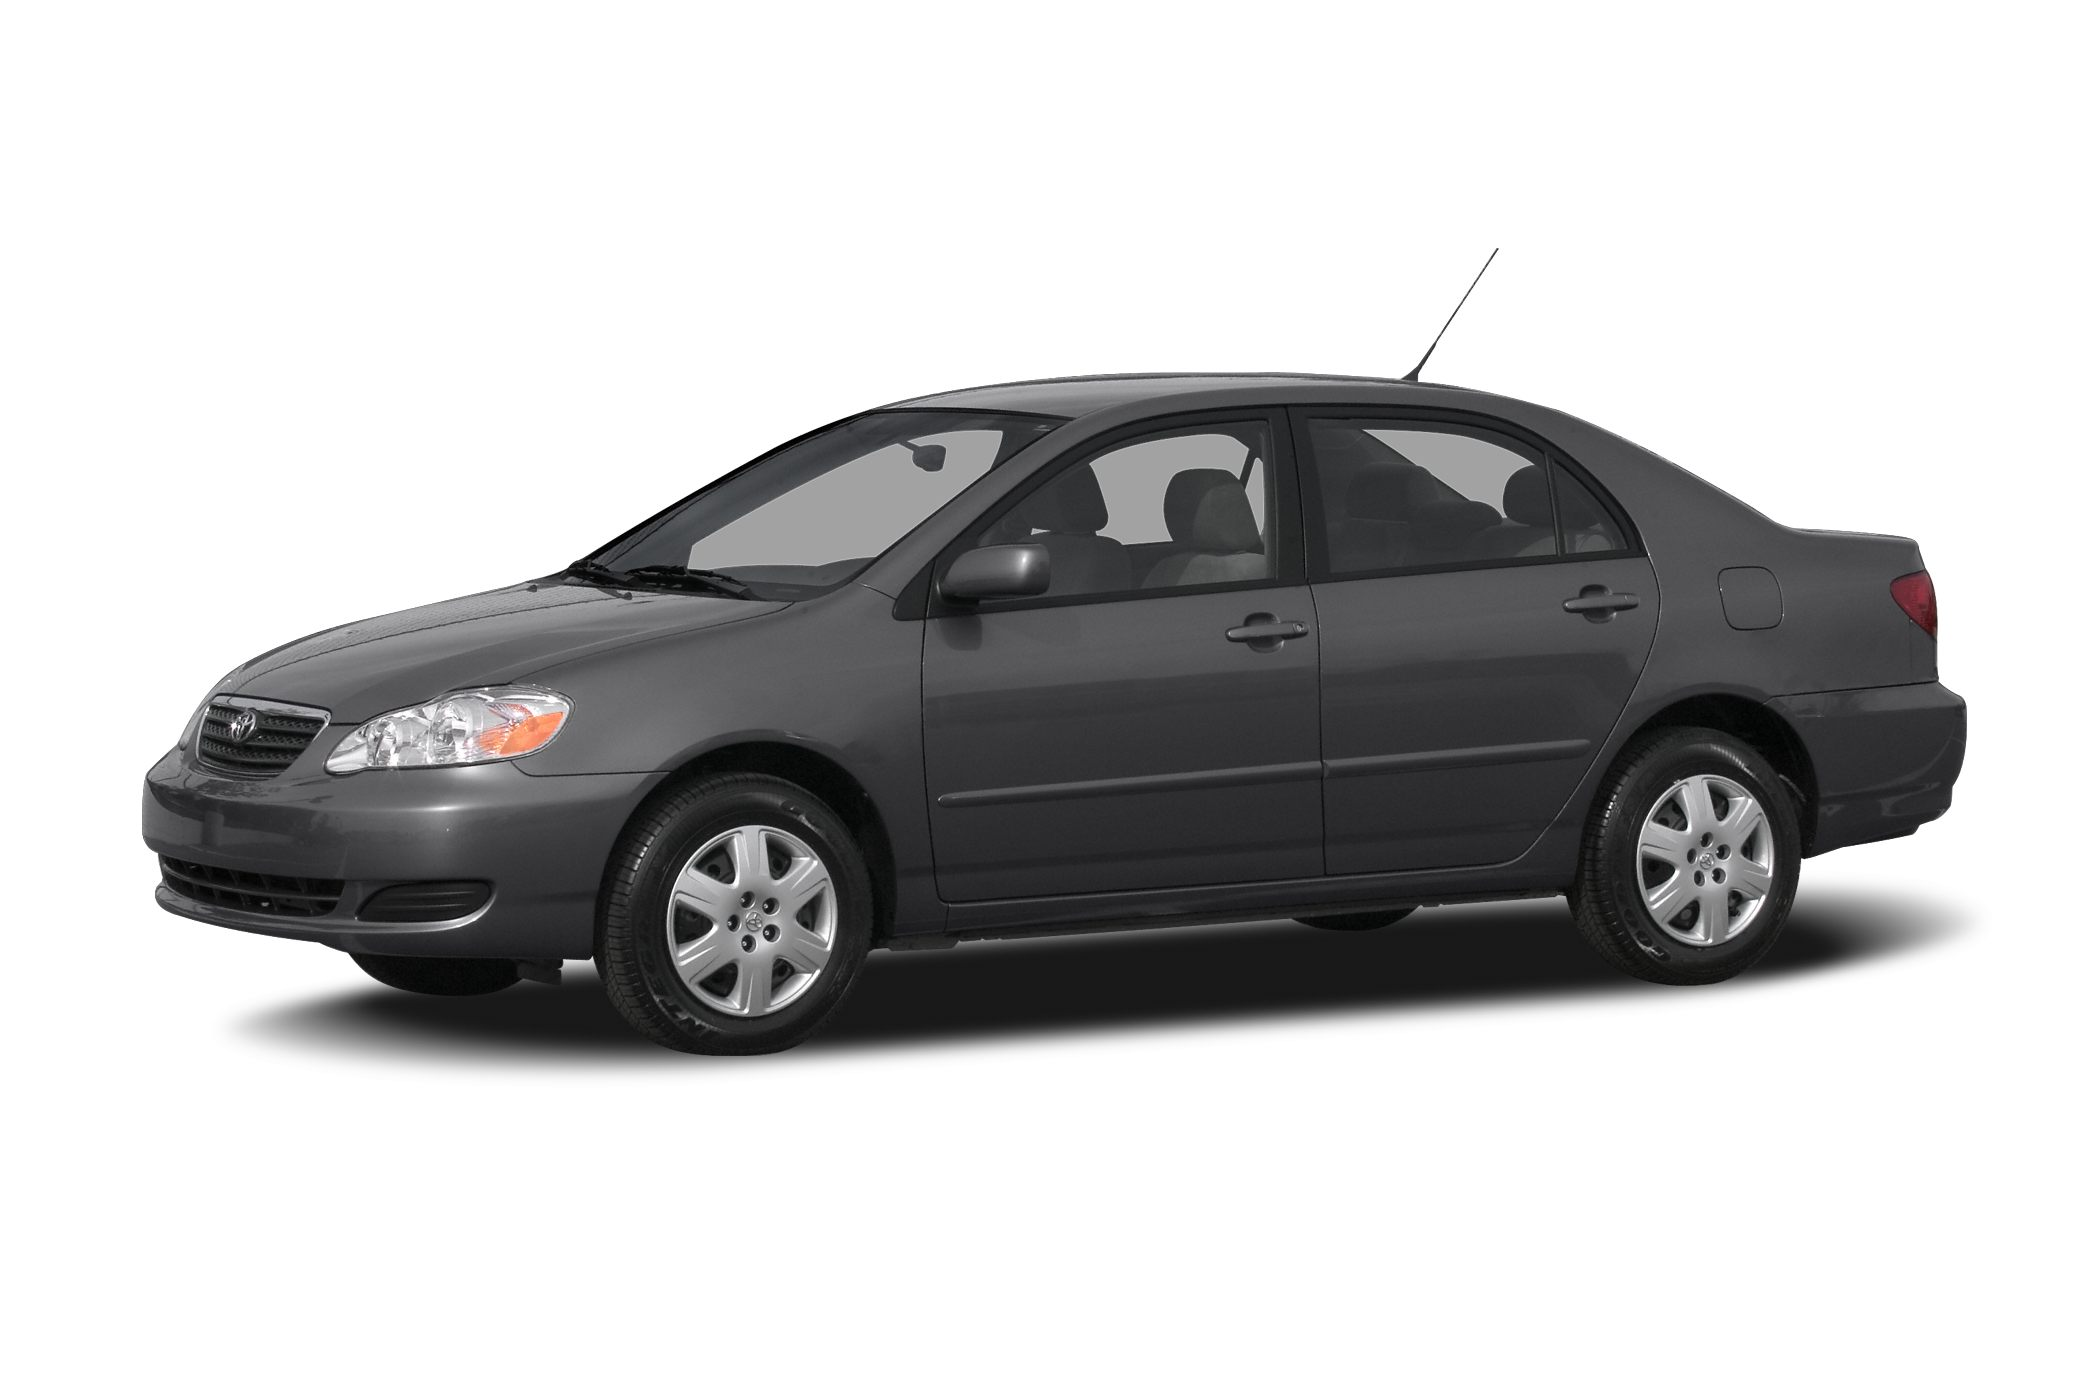 2008 Toyota Corolla S Sedan for sale in Georgetown for $9,995 with 70,257 miles.